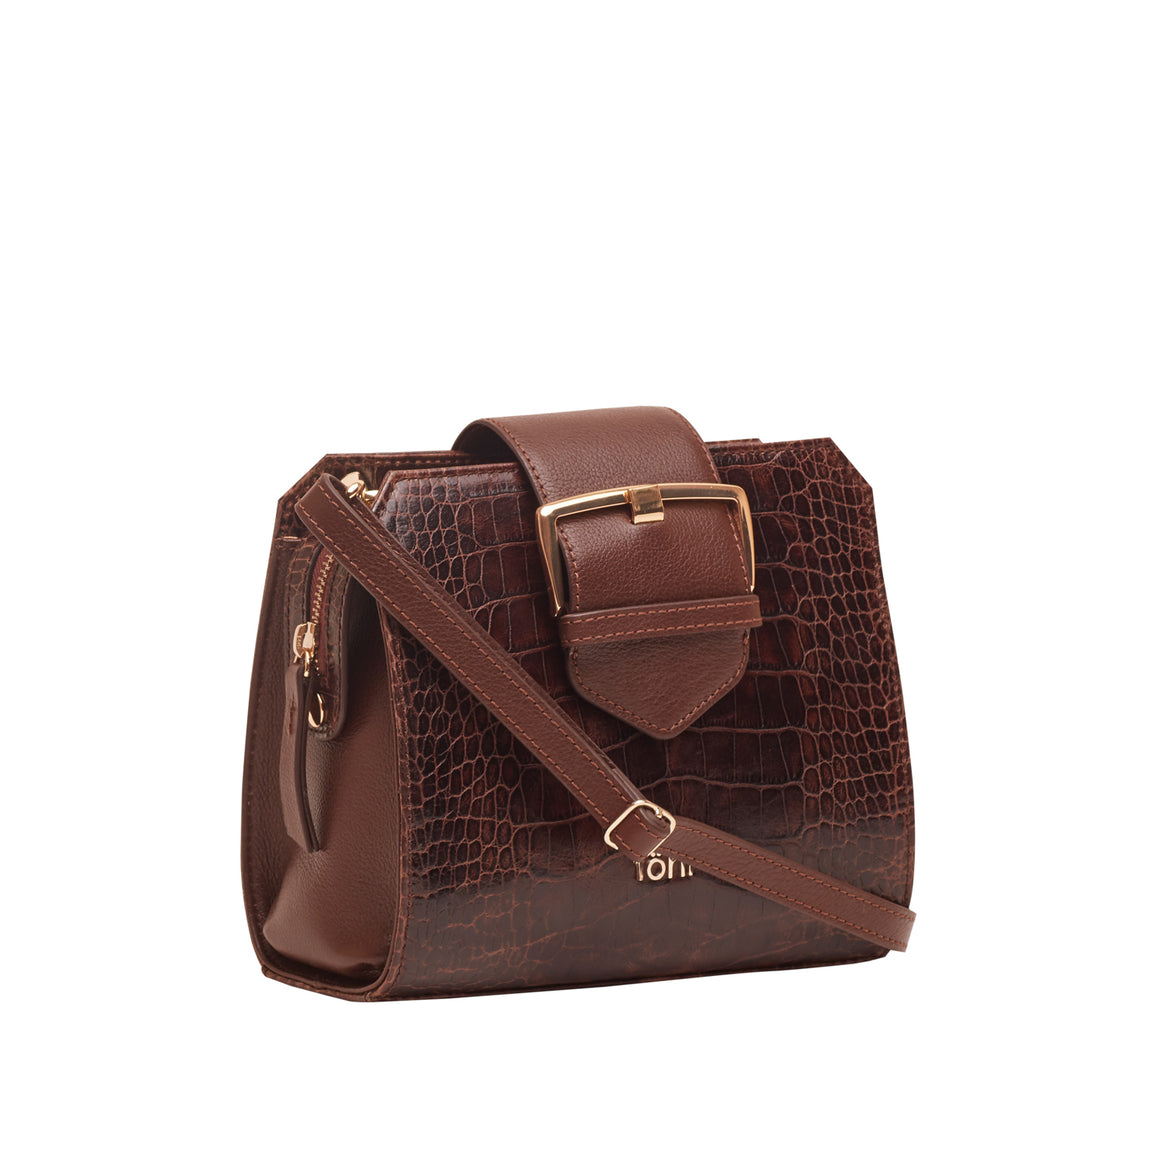 SG 0012 - TOHL MIA WOMEN'S SLING BAG - CROCODILLO KAHVE